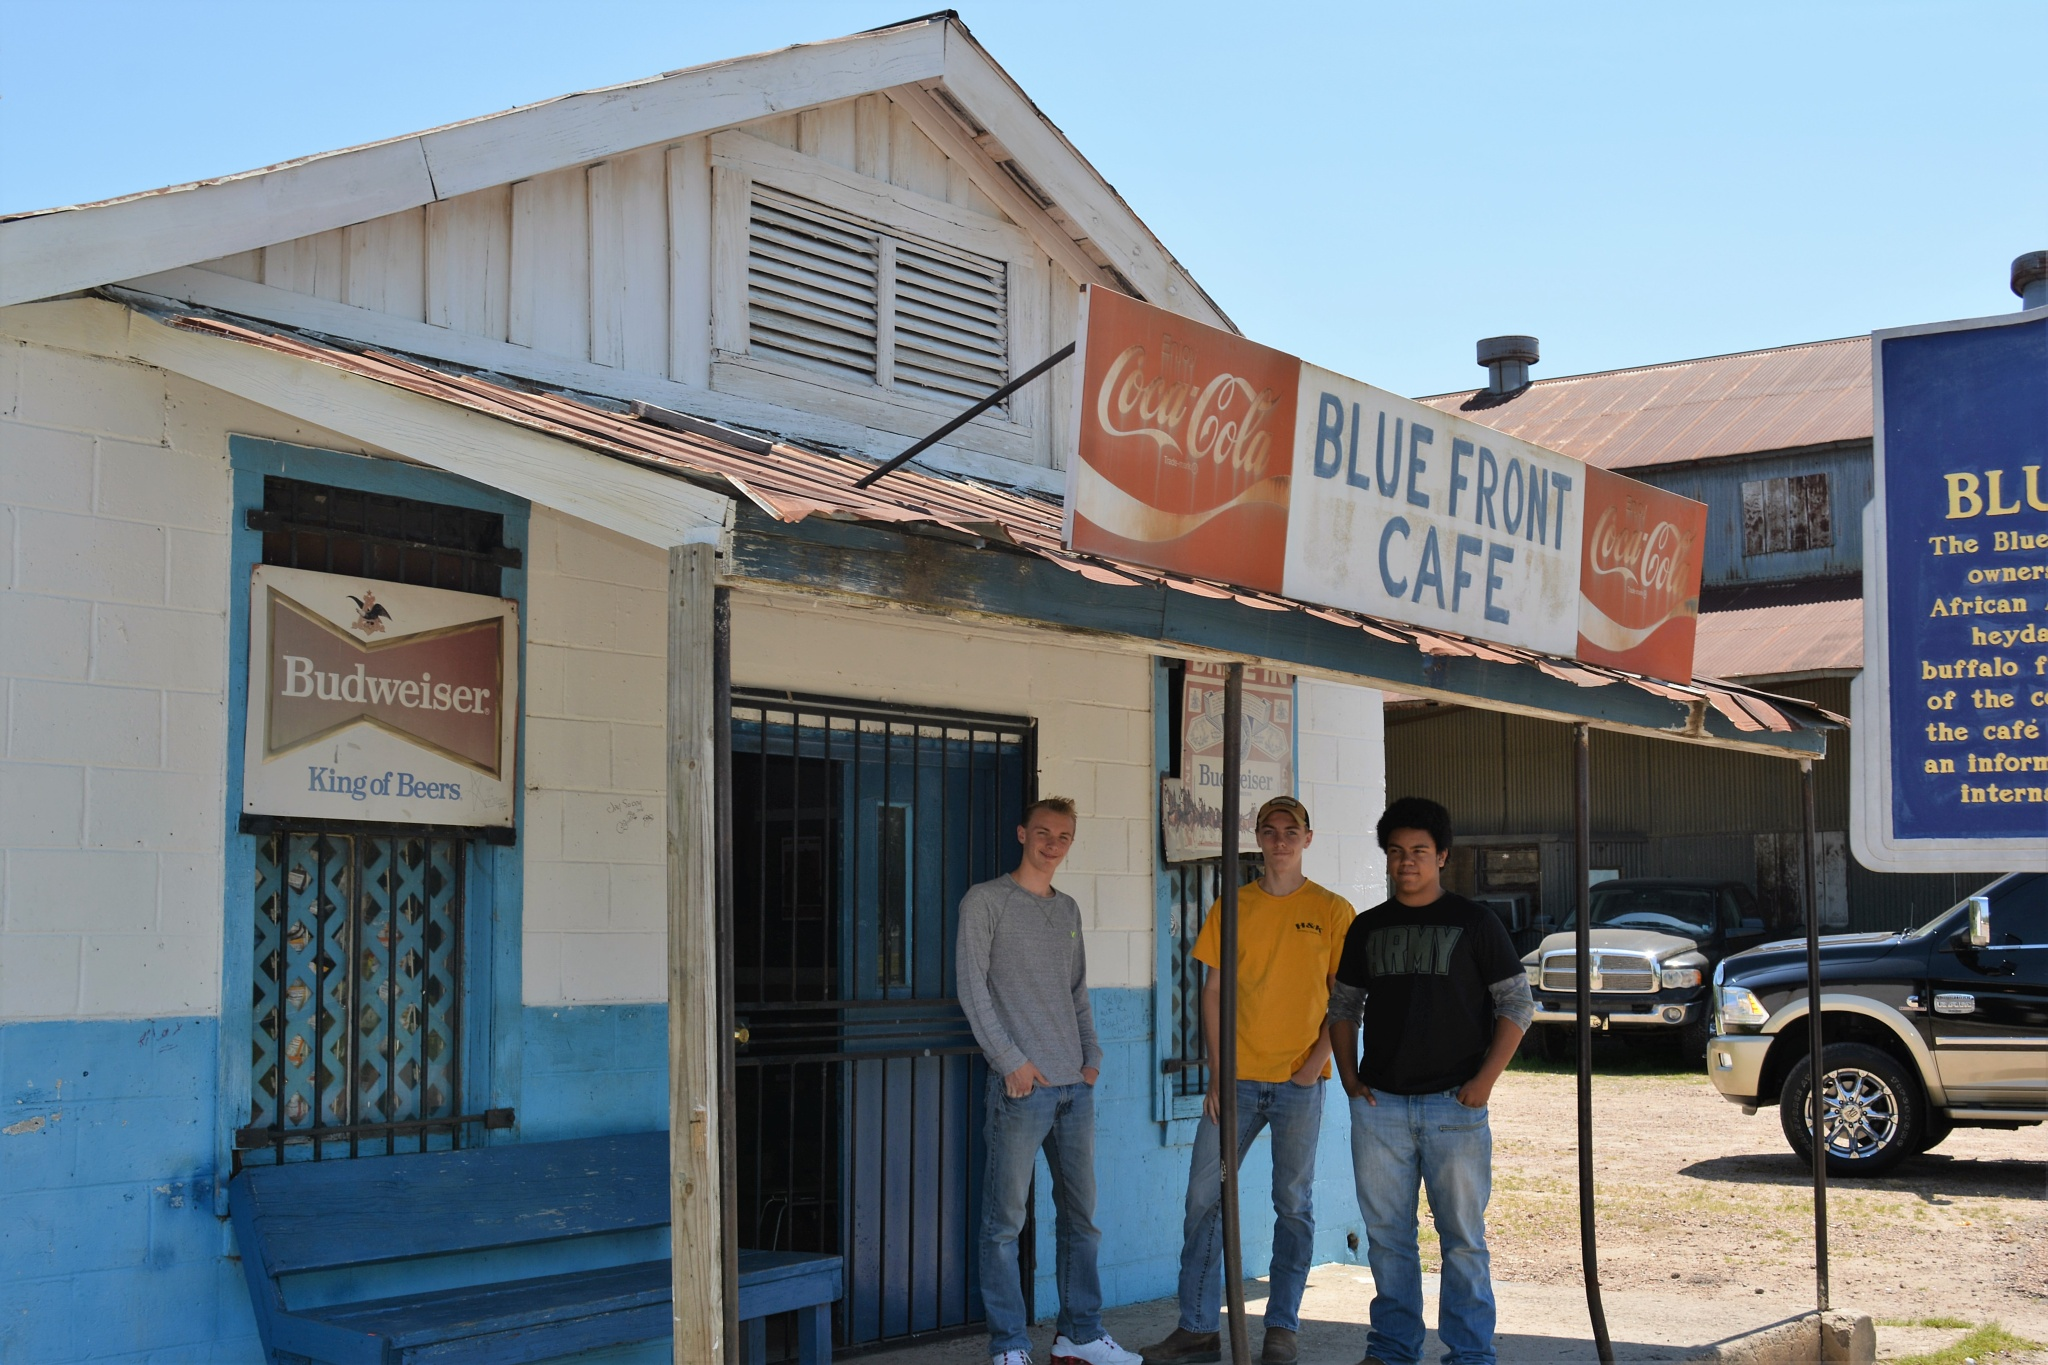 Hanging at the Blue Front by Gena Koelker